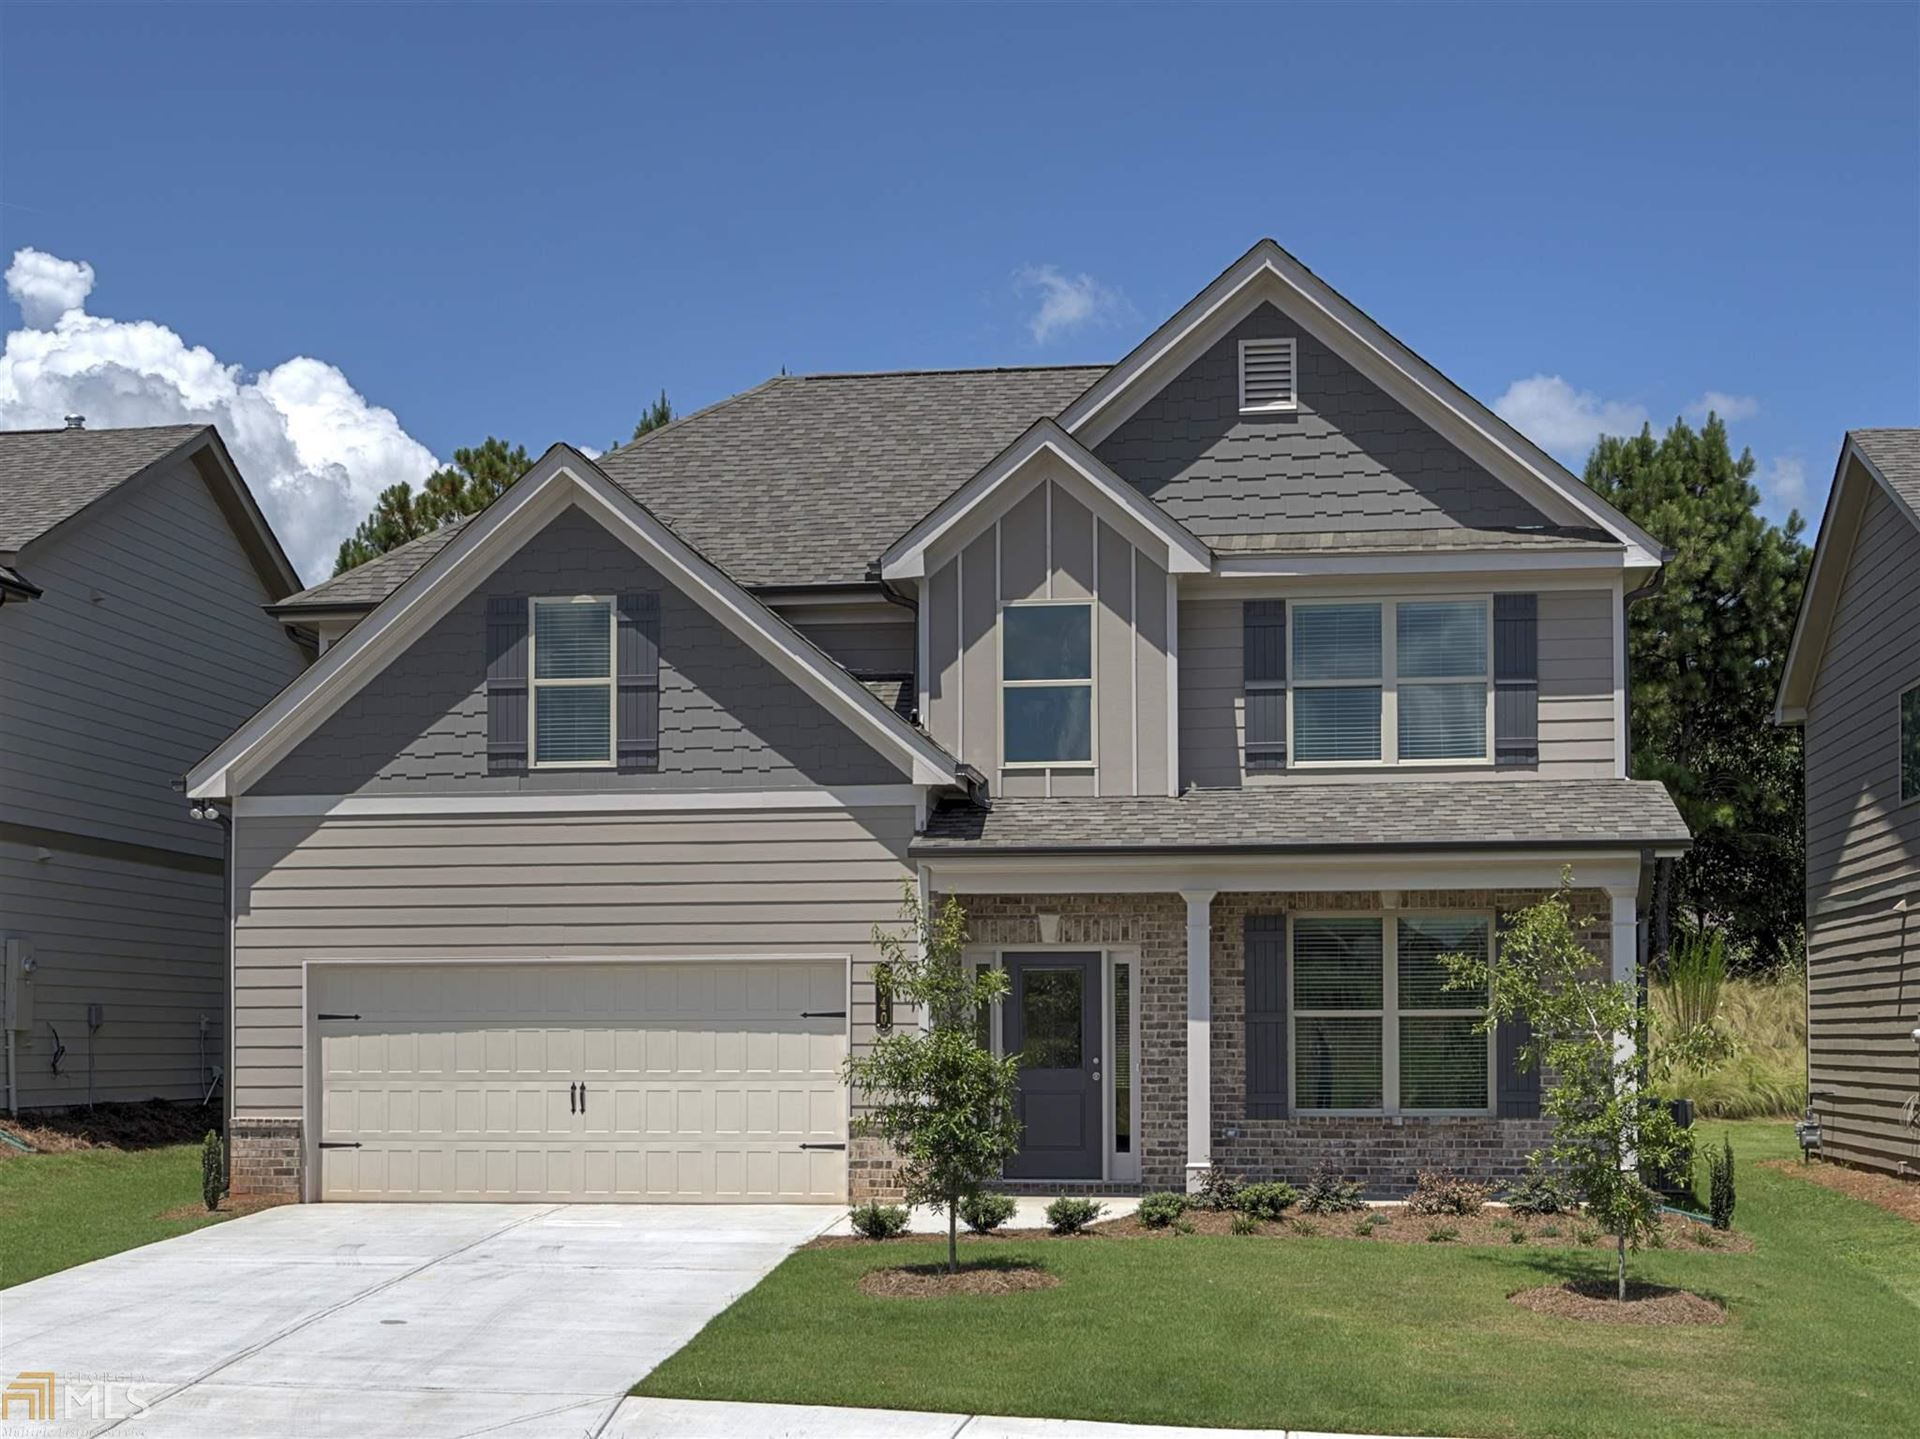 6057 Fair Winds Cv, Flowery Branch, GA 30542 - #: 8857502